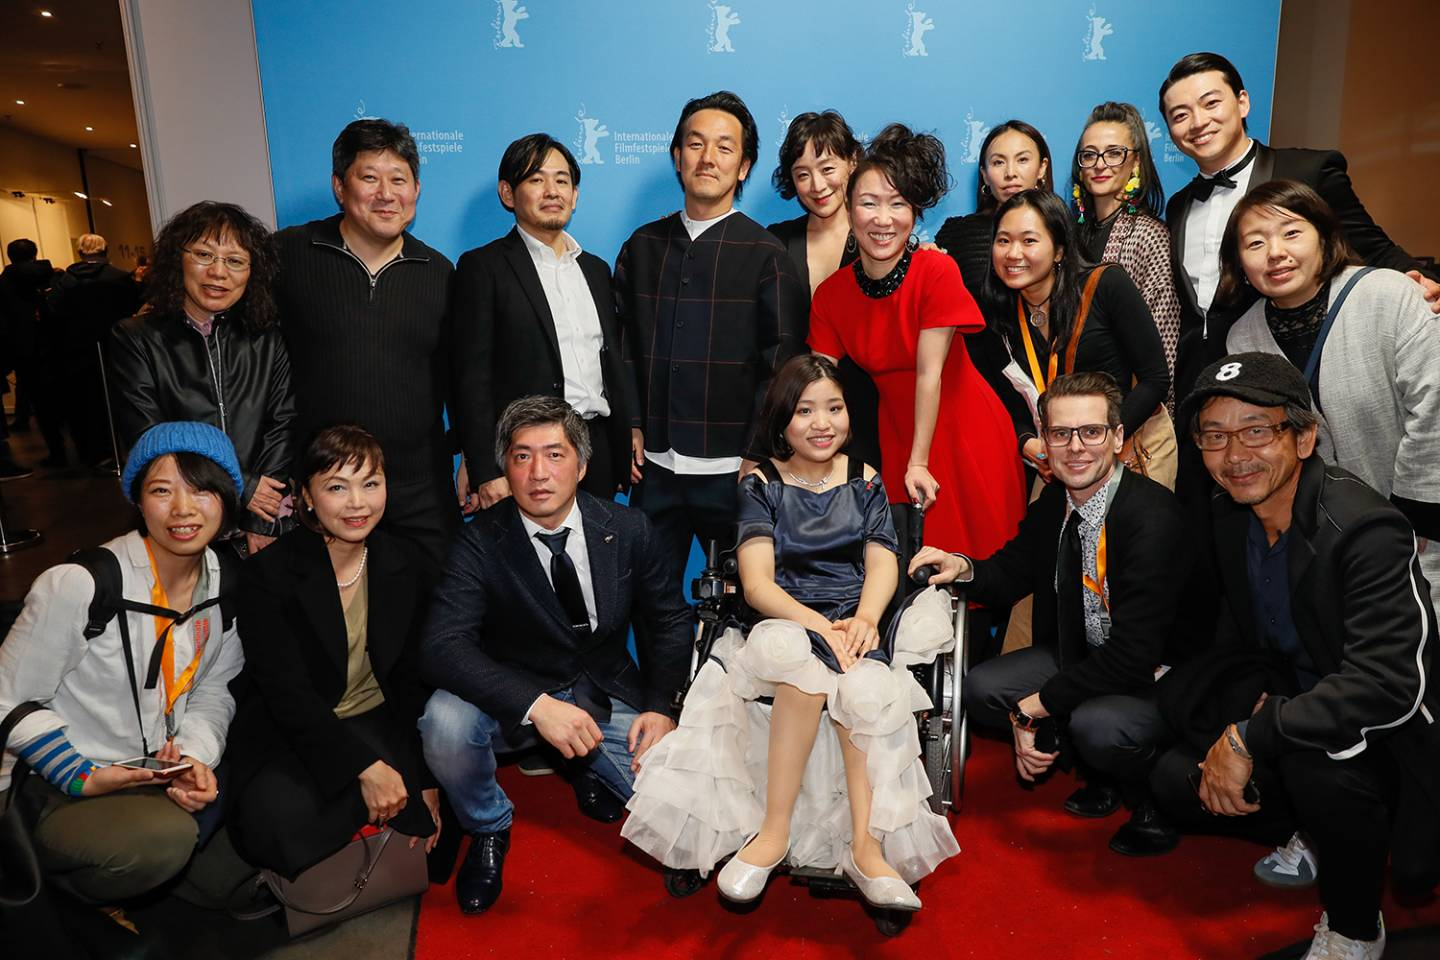 Ensemble Foto von 37 Seconds auf der Berlinale